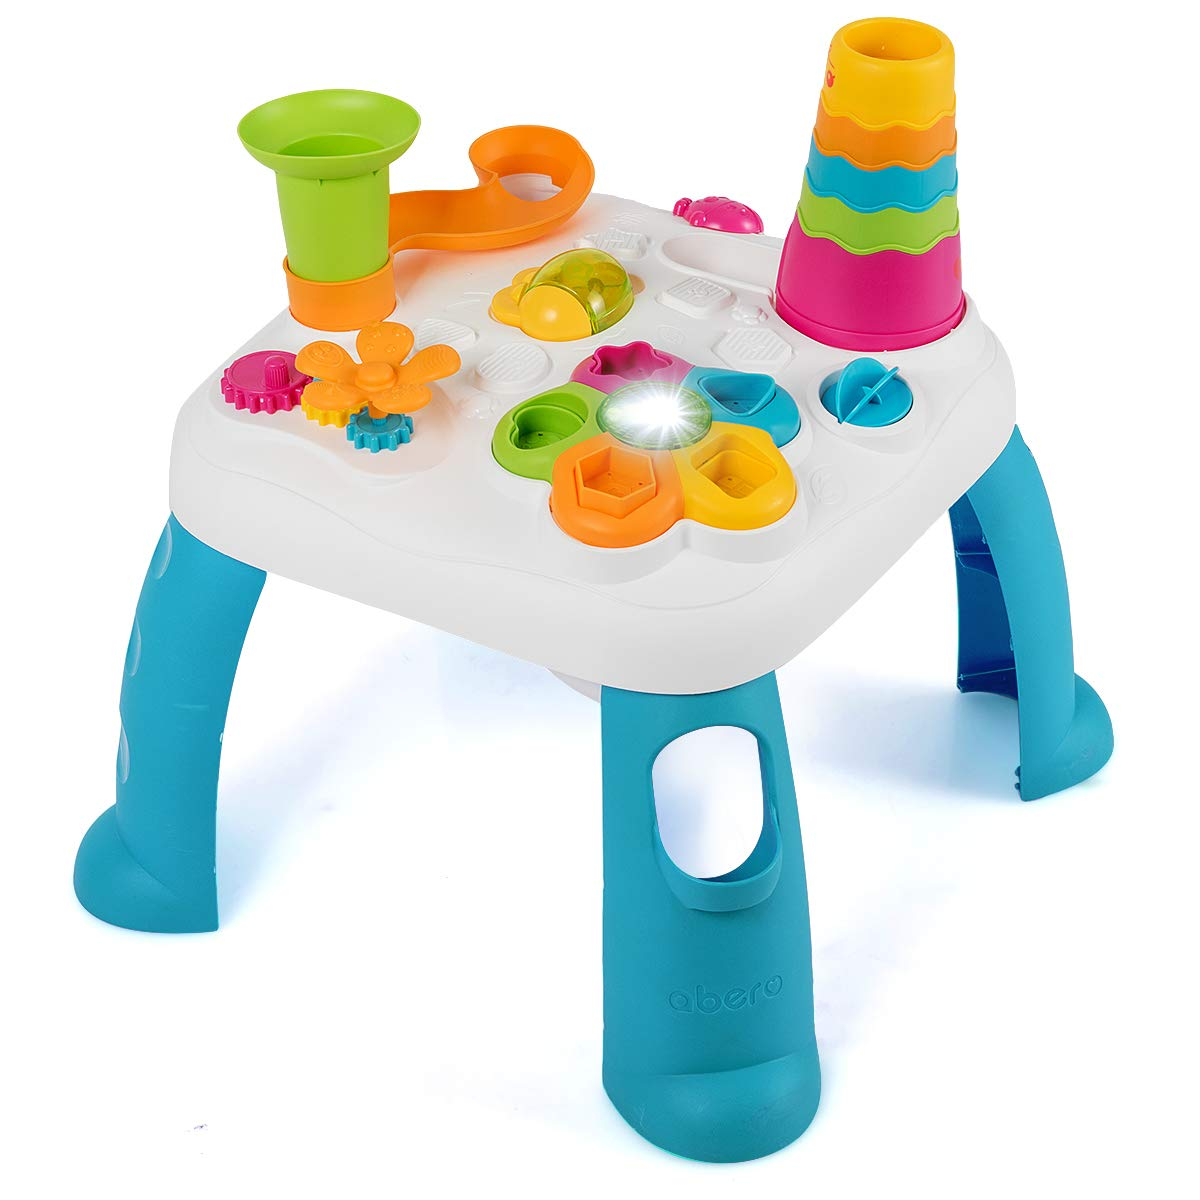 Baby Joy Toddler Learning Table, 2 in 1 Sit to Stand Early Education Toy, Convertible Activity Play Game Musical Table w/ Sound, Light, Music Functions, Kids Toddler Birthday Gift (Blue)